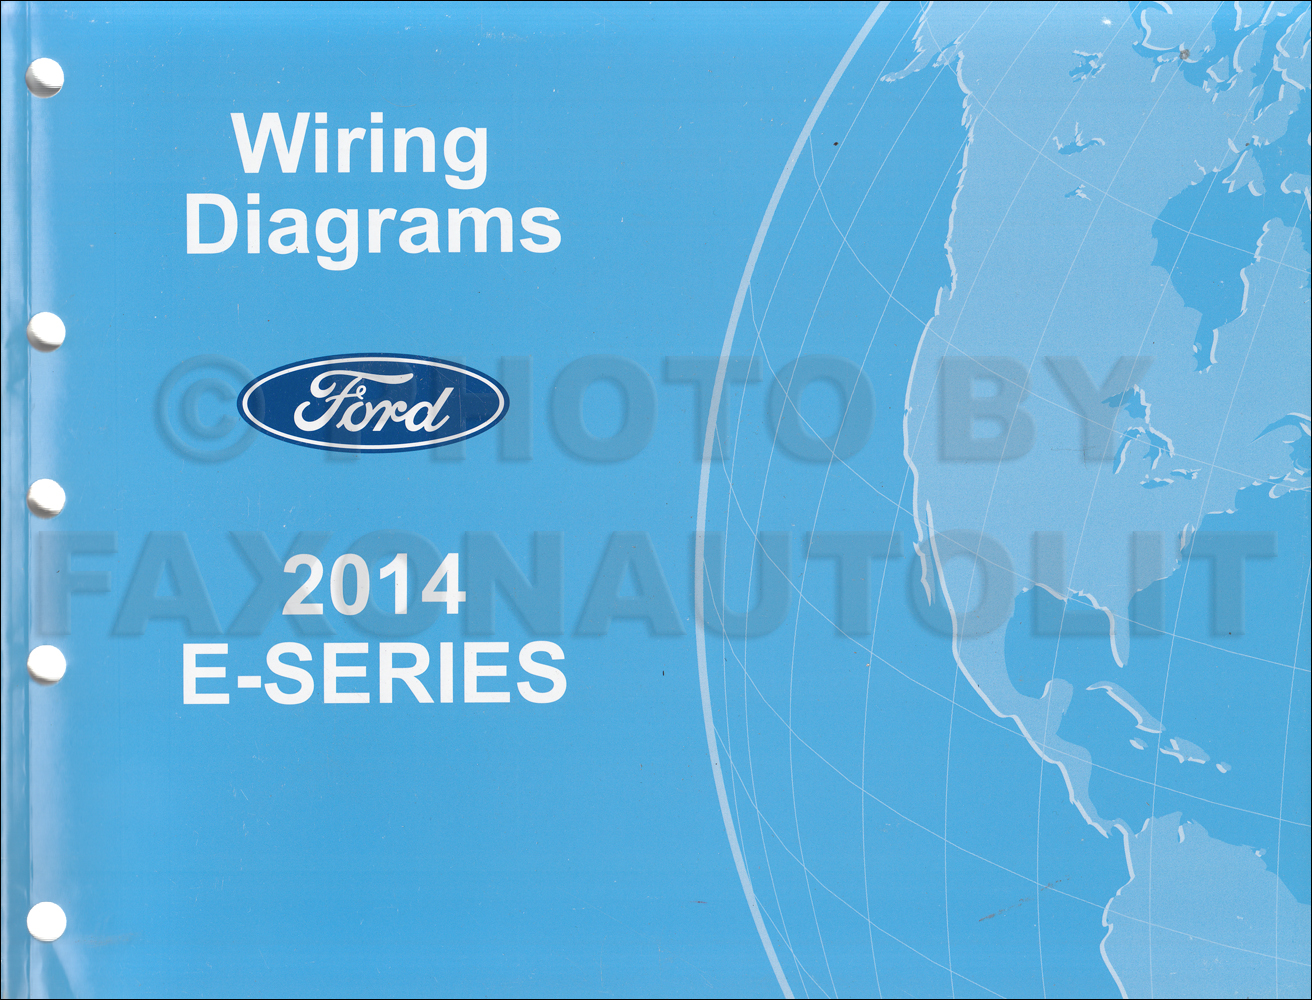 Ford E450 Wiring - Wiring Data Diagram  Ford Transit Door Lock Wiring Diagram on 2015 kia soul wiring diagram, 2015 honda fit wiring diagram, 2015 honda civic wiring diagram, 2015 jeep compass wiring diagram, 2015 honda cr-v wiring diagram, 2015 kia optima wiring diagram, 2015 vw jetta wiring diagram, 2015 subaru forester wiring diagram, 2015 mazda cx-5 wiring diagram, 2015 chrysler 200 wiring diagram, 2015 dodge ram wiring diagram, 2015 jeep cherokee wiring diagram, 2015 jeep wrangler wiring diagram, 2015 chevrolet silverado wiring diagram, 2015 chevrolet equinox wiring diagram, 2015 mini cooper wiring diagram, 2015 chevrolet suburban wiring diagram, 2015 mercedes-benz c-class wiring diagram, 2015 toyota tundra wiring diagram, 2015 honda accord wiring diagram,